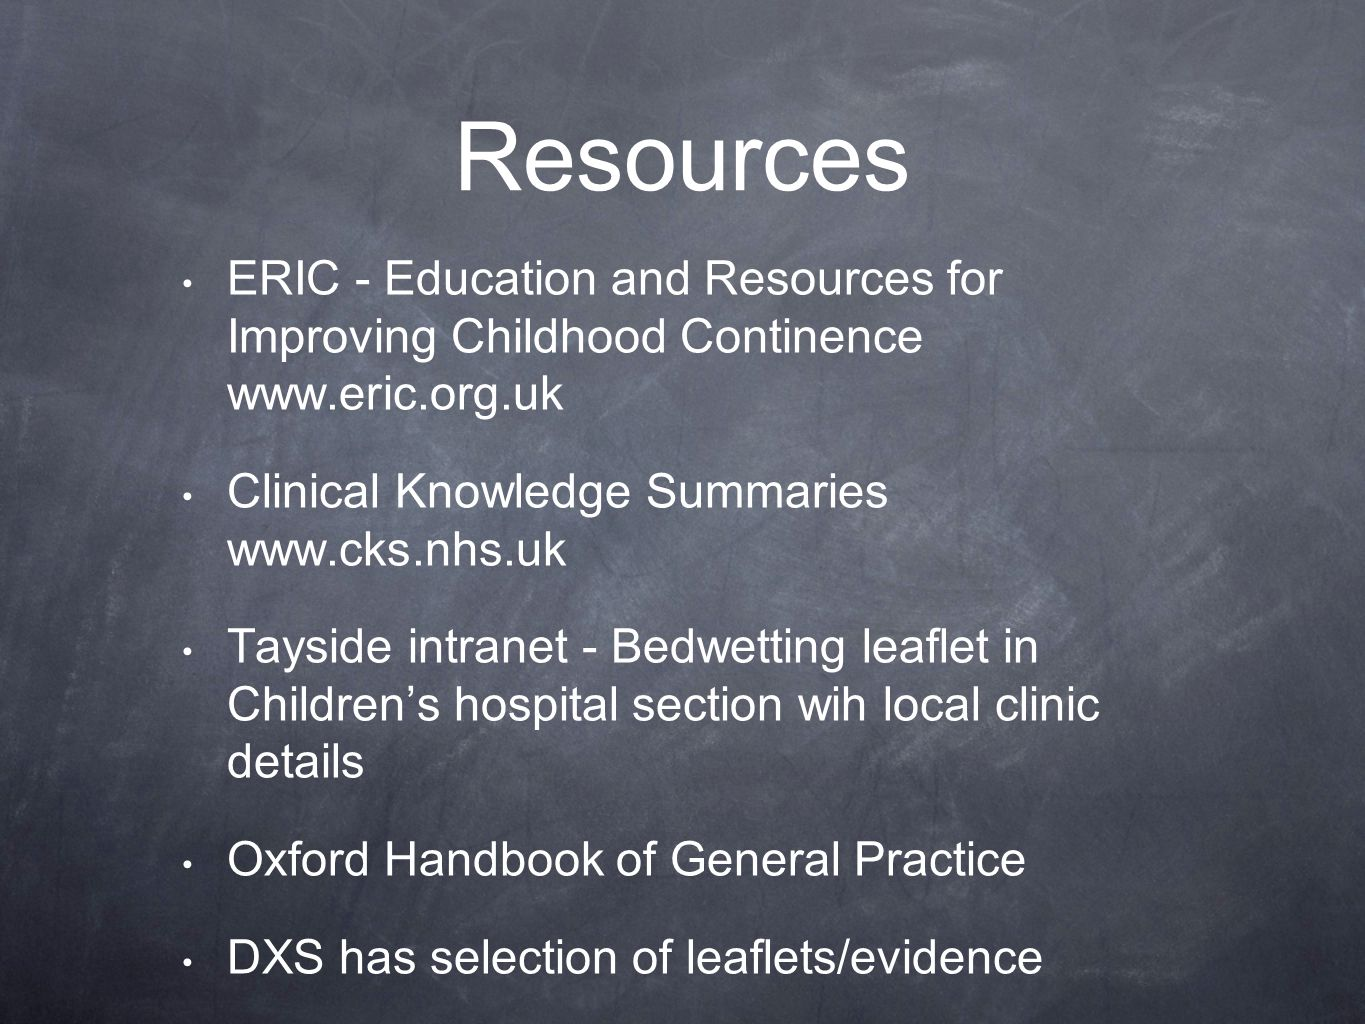 Resources ERIC - Education and Resources for Improving Childhood Continence www.eric.org.uk Clinical Knowledge Summaries www.cks.nhs.uk Tayside intranet - Bedwetting leaflet in Children's hospital section wih local clinic details Oxford Handbook of General Practice DXS has selection of leaflets/evidence